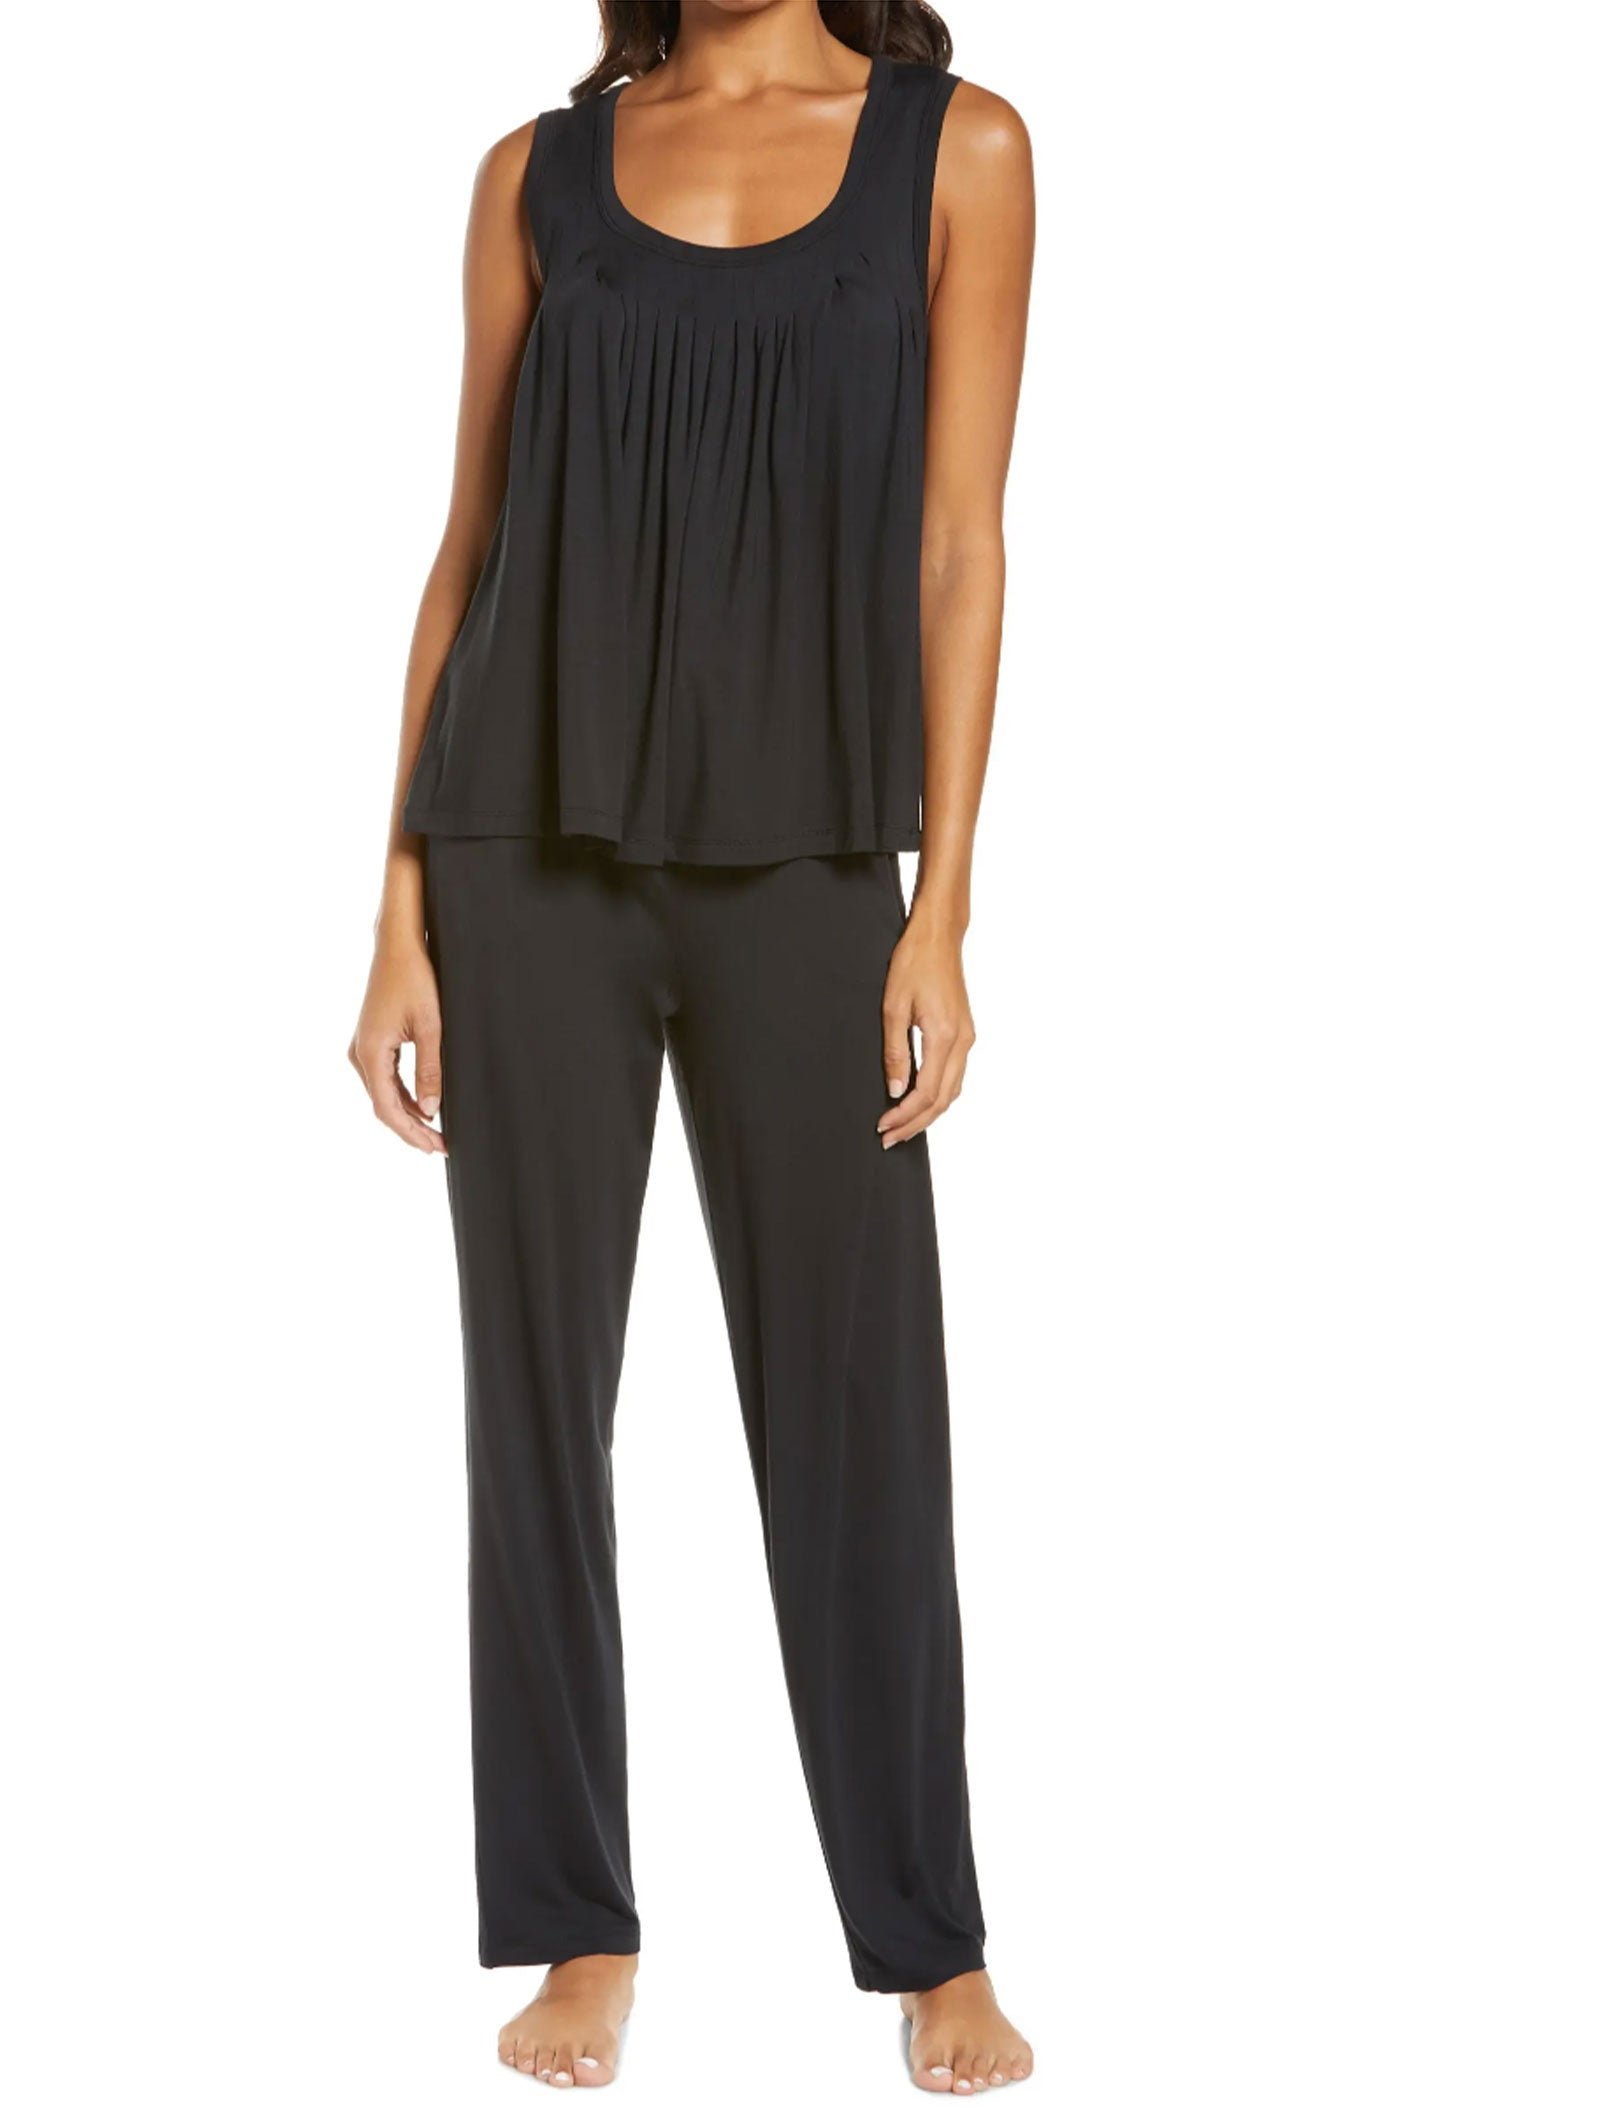 Modal Pleat Front Cami and Pant Set in Black